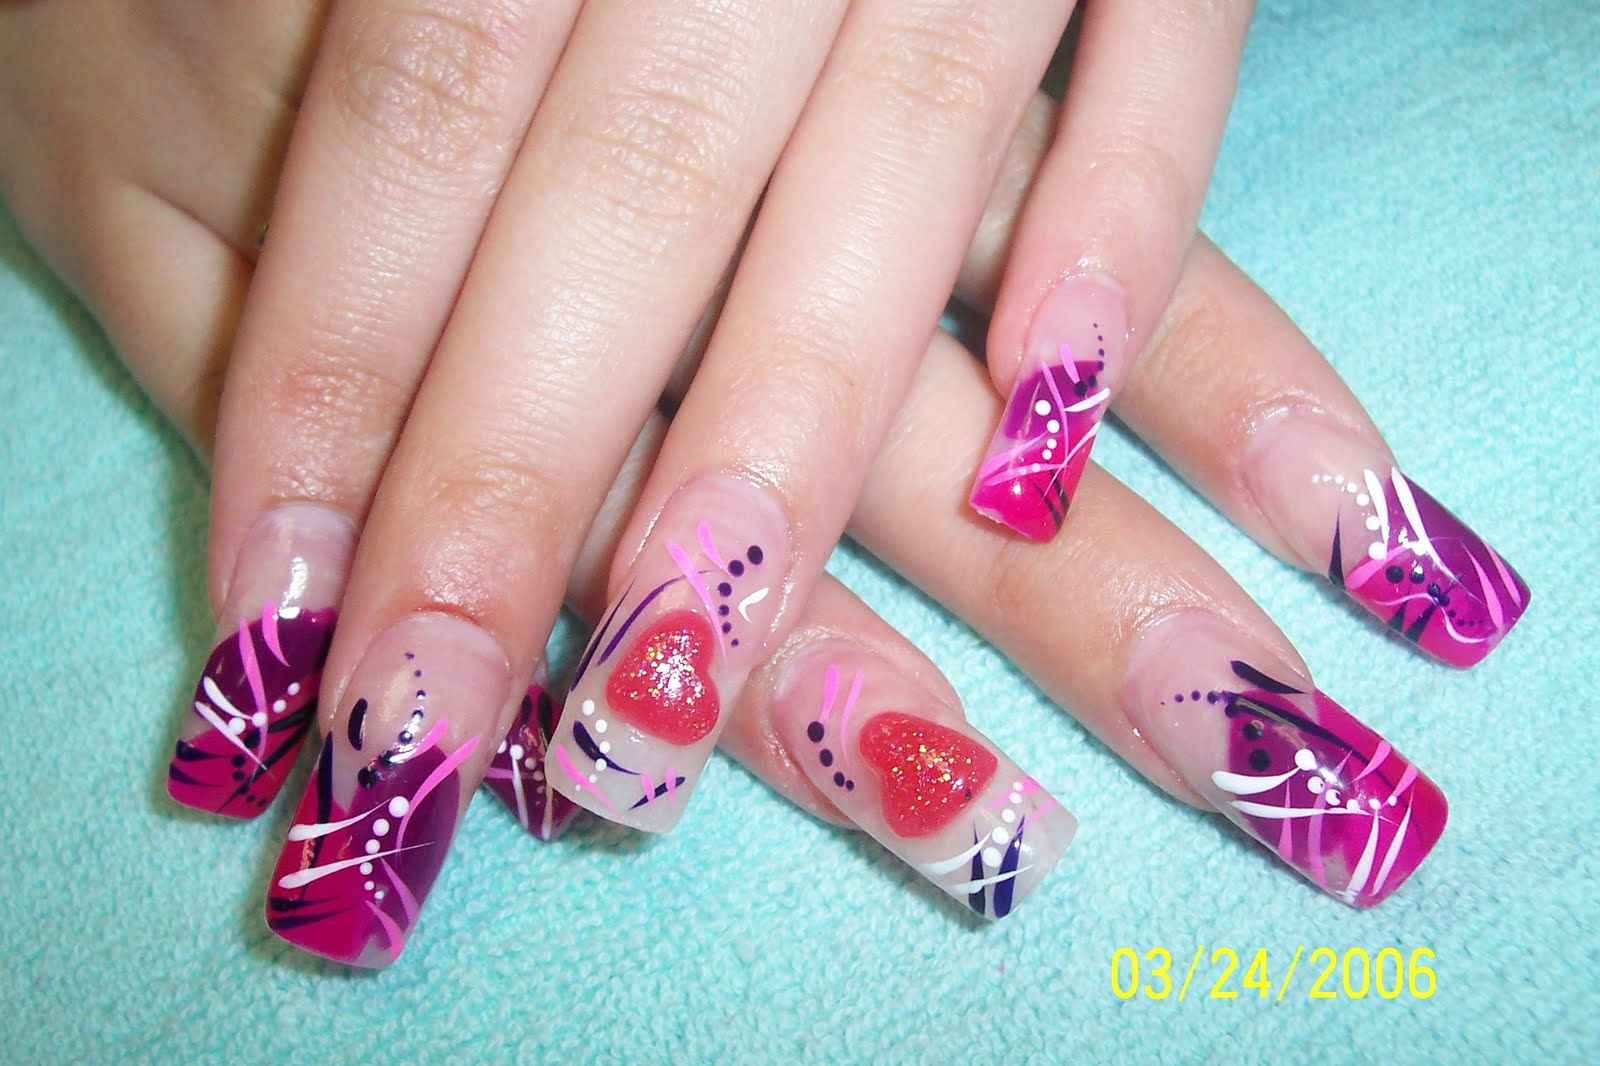 Most Popular Videos How To Applying Nail Art Video Training